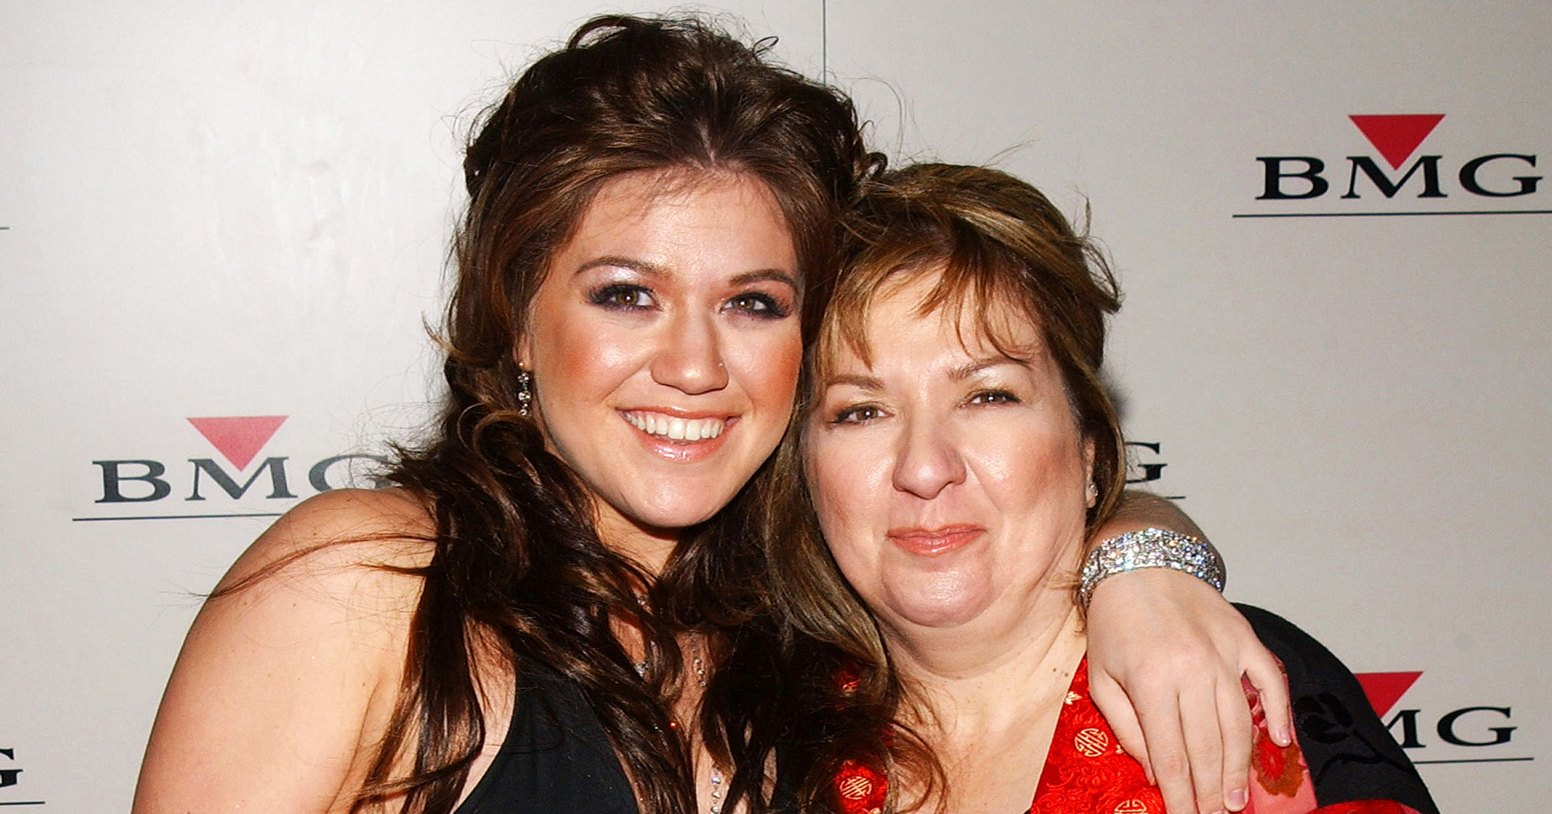 Kelly Clarkson Doesn't Want to Be a Stage Parent Like Her Mom